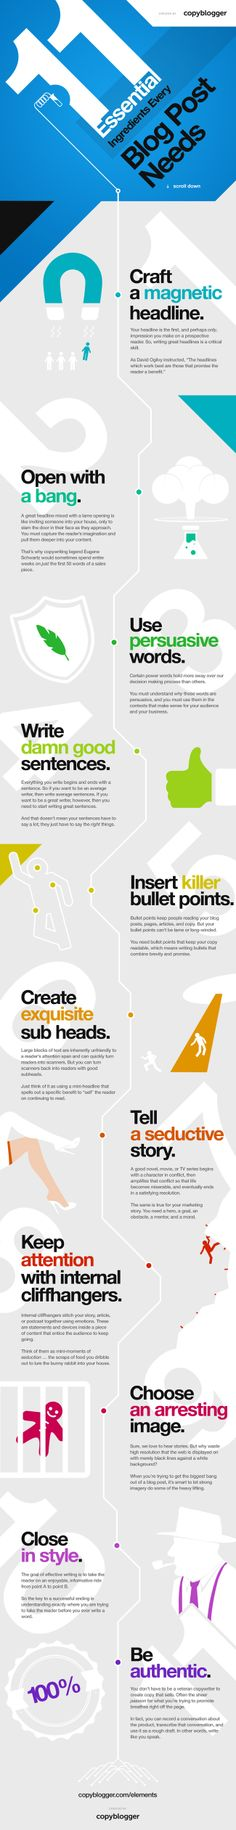 11 Essential Ingredients Every Blog Post Needs #infographic